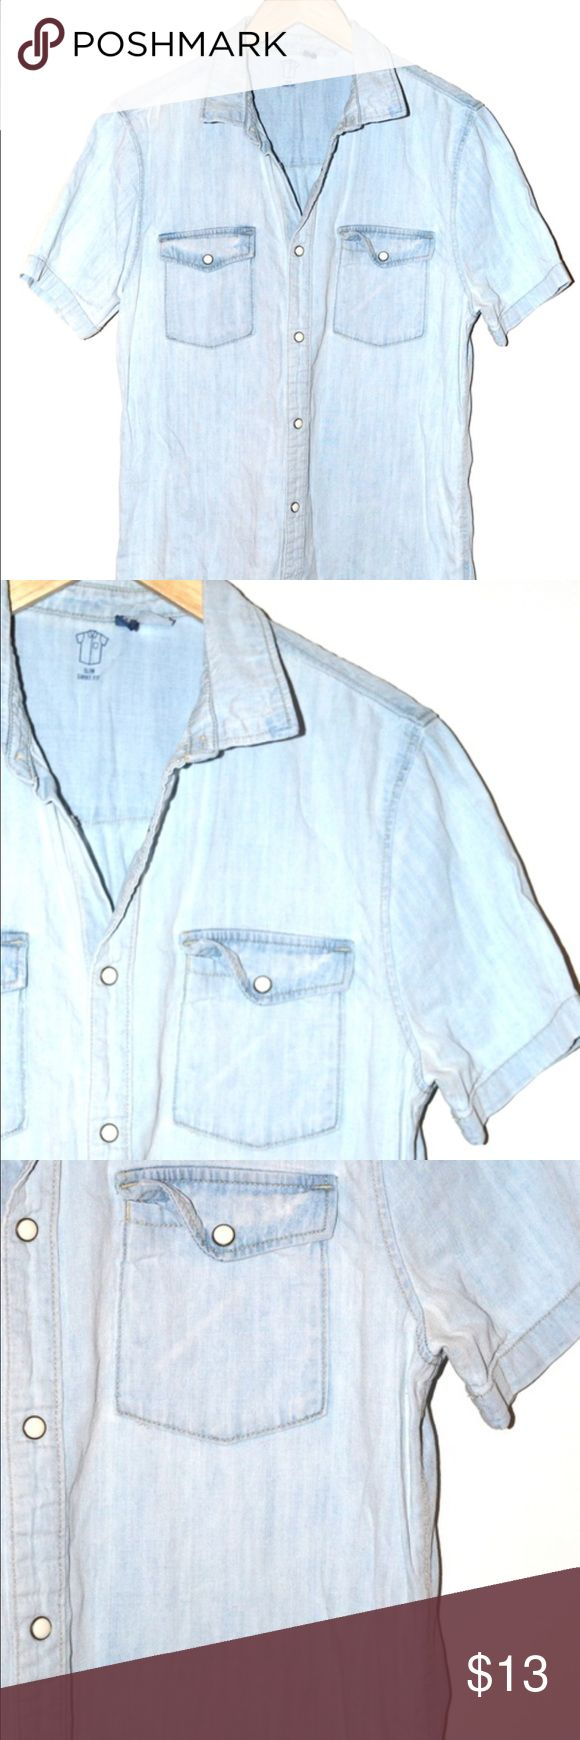 Light Chambray Denim Button Down Blouse H&M Brand denim button down collared top with frontal pocket details. #denim #chambray #buttondown #light #summer #spring #denimblouse #hm  Light Chambray Denim Button Down H&M Tops Button Down Shirts